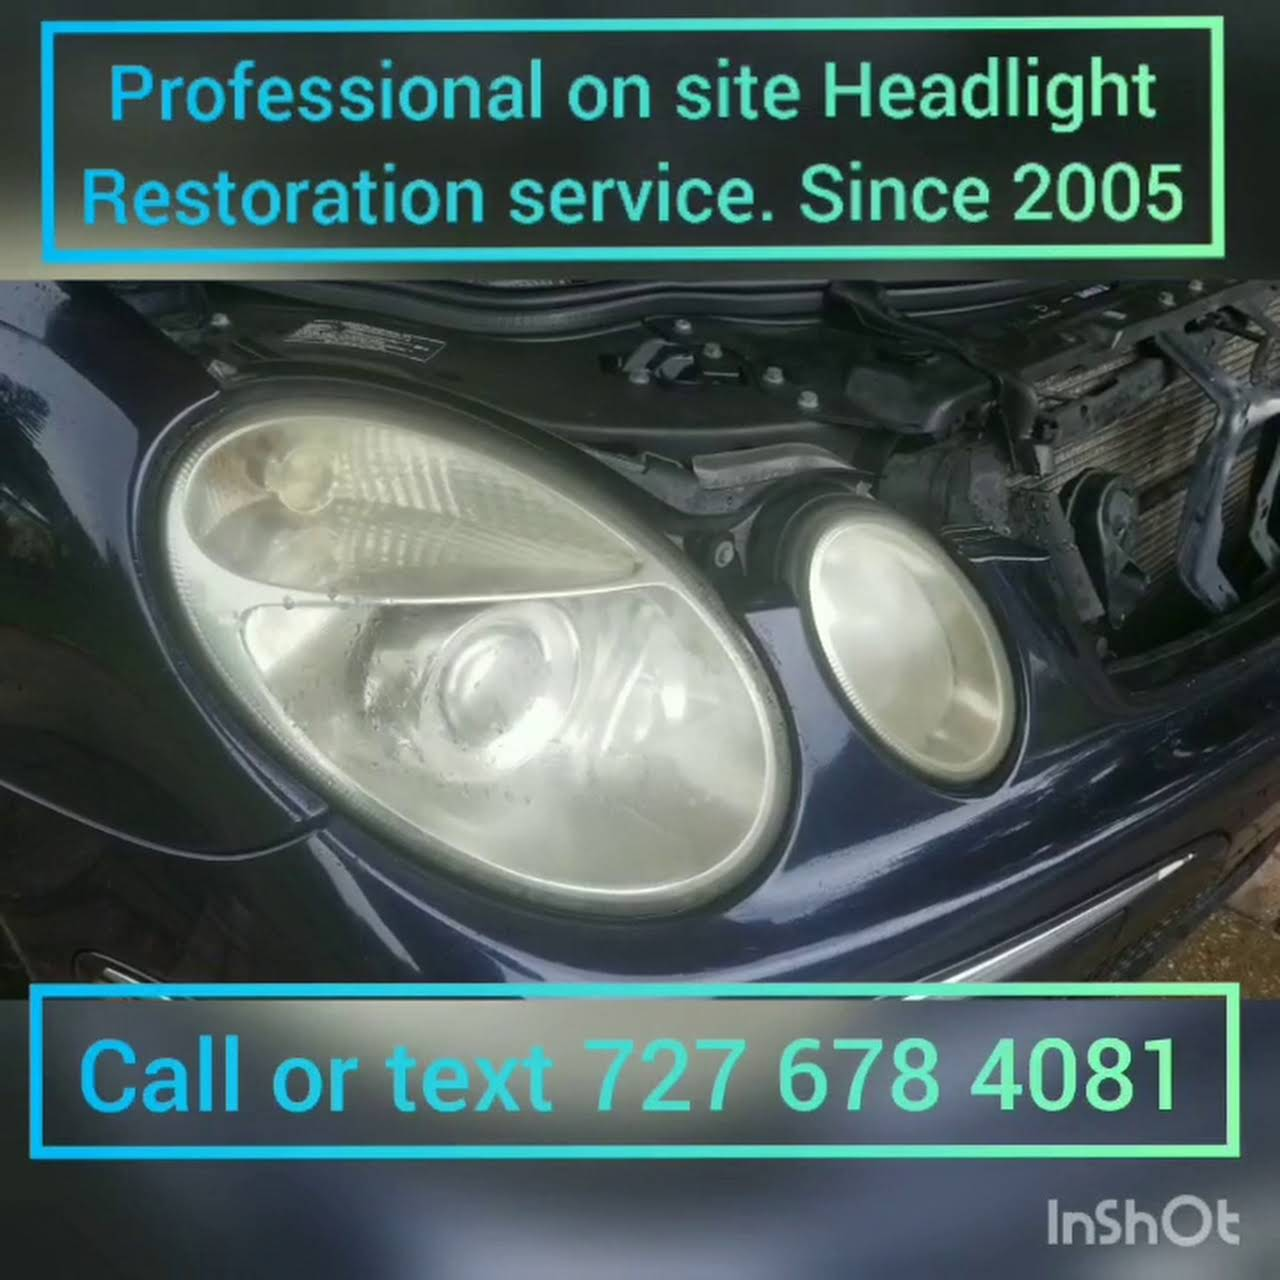 Clear As Water Mobile Headlight Restoration - The Best